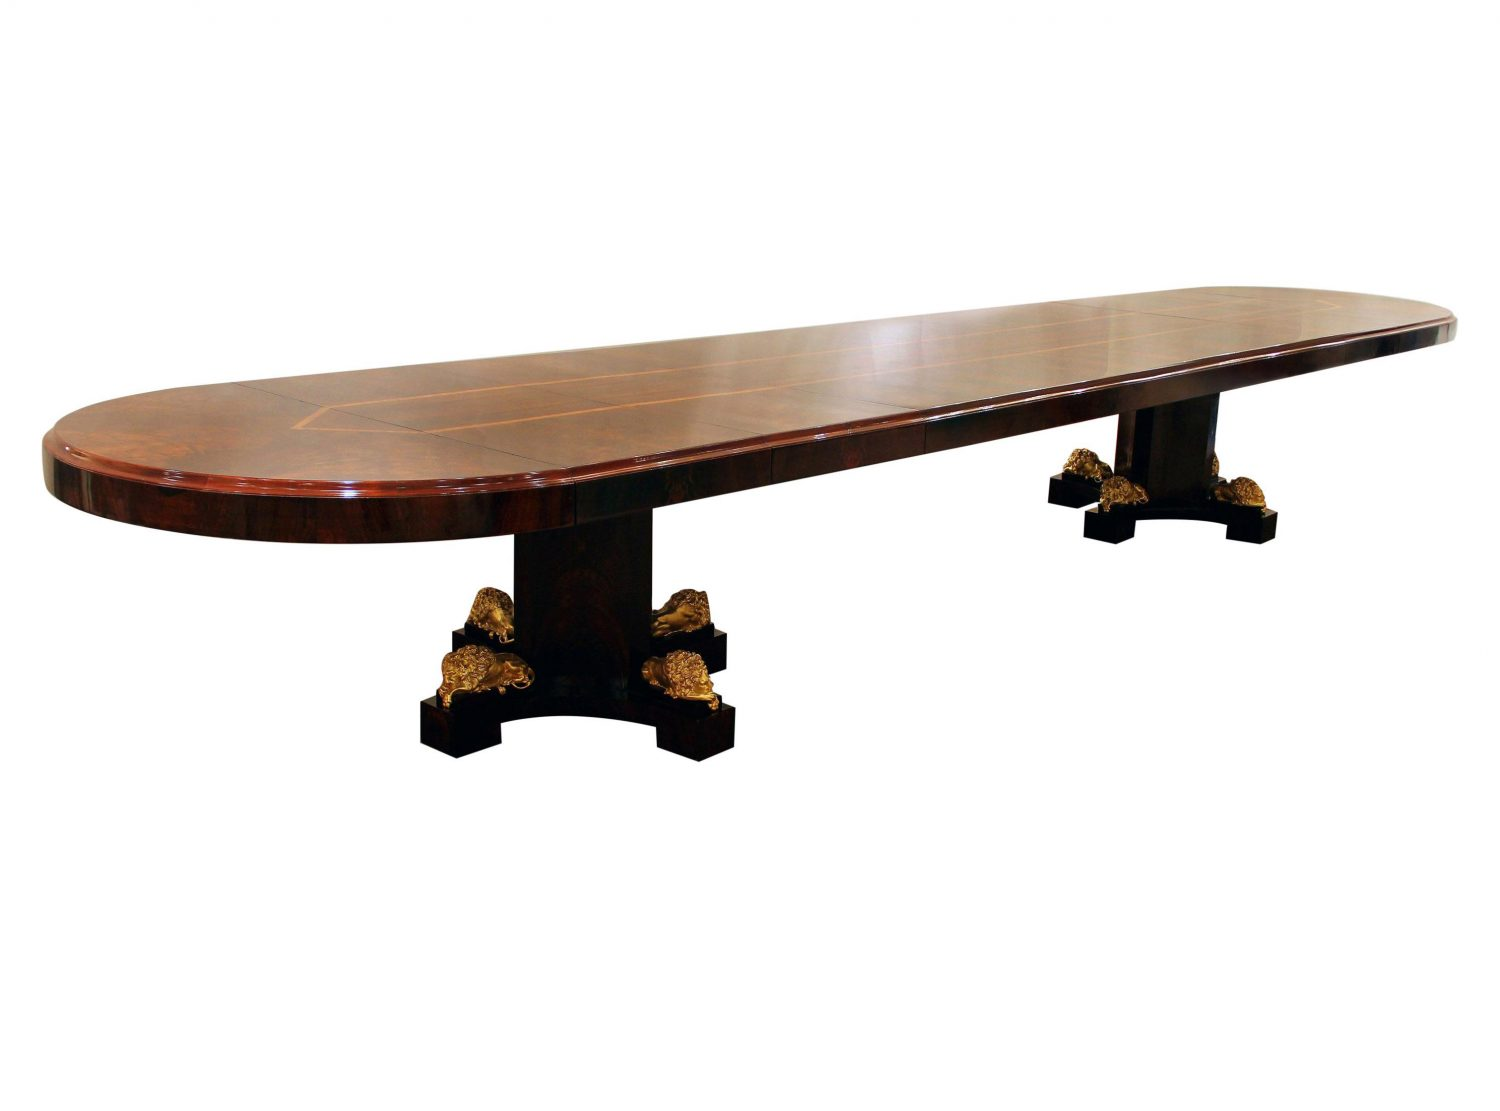 19th Century Dining Room Table